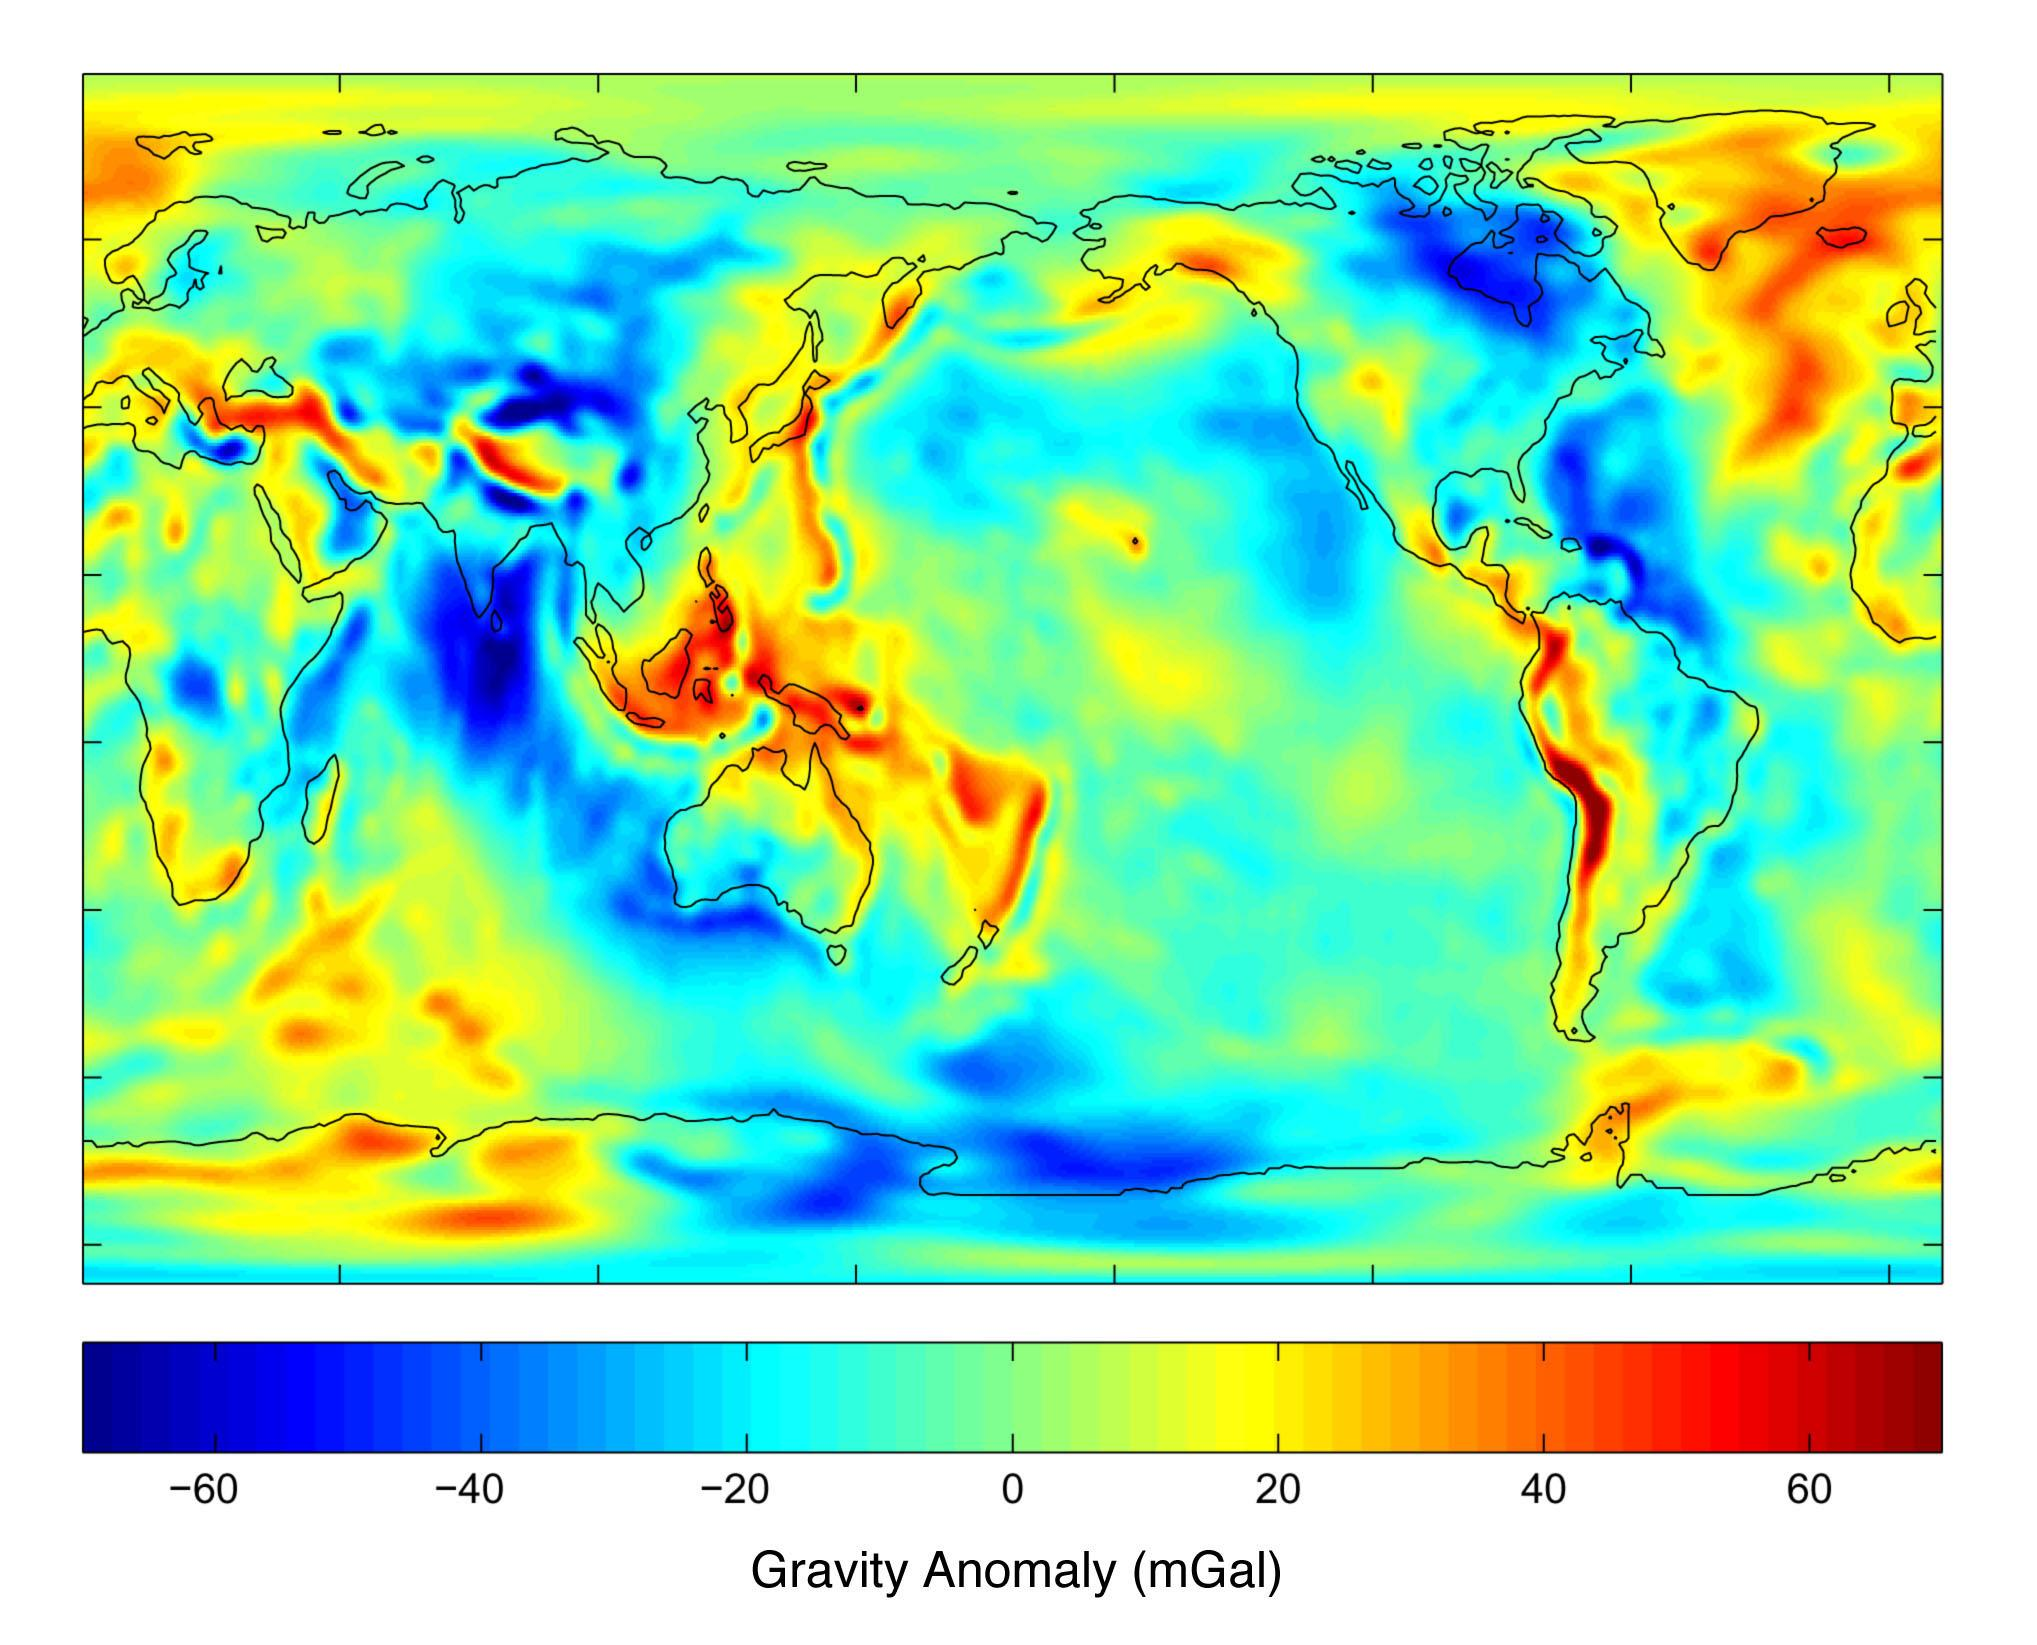 Gravity anomalies in the world